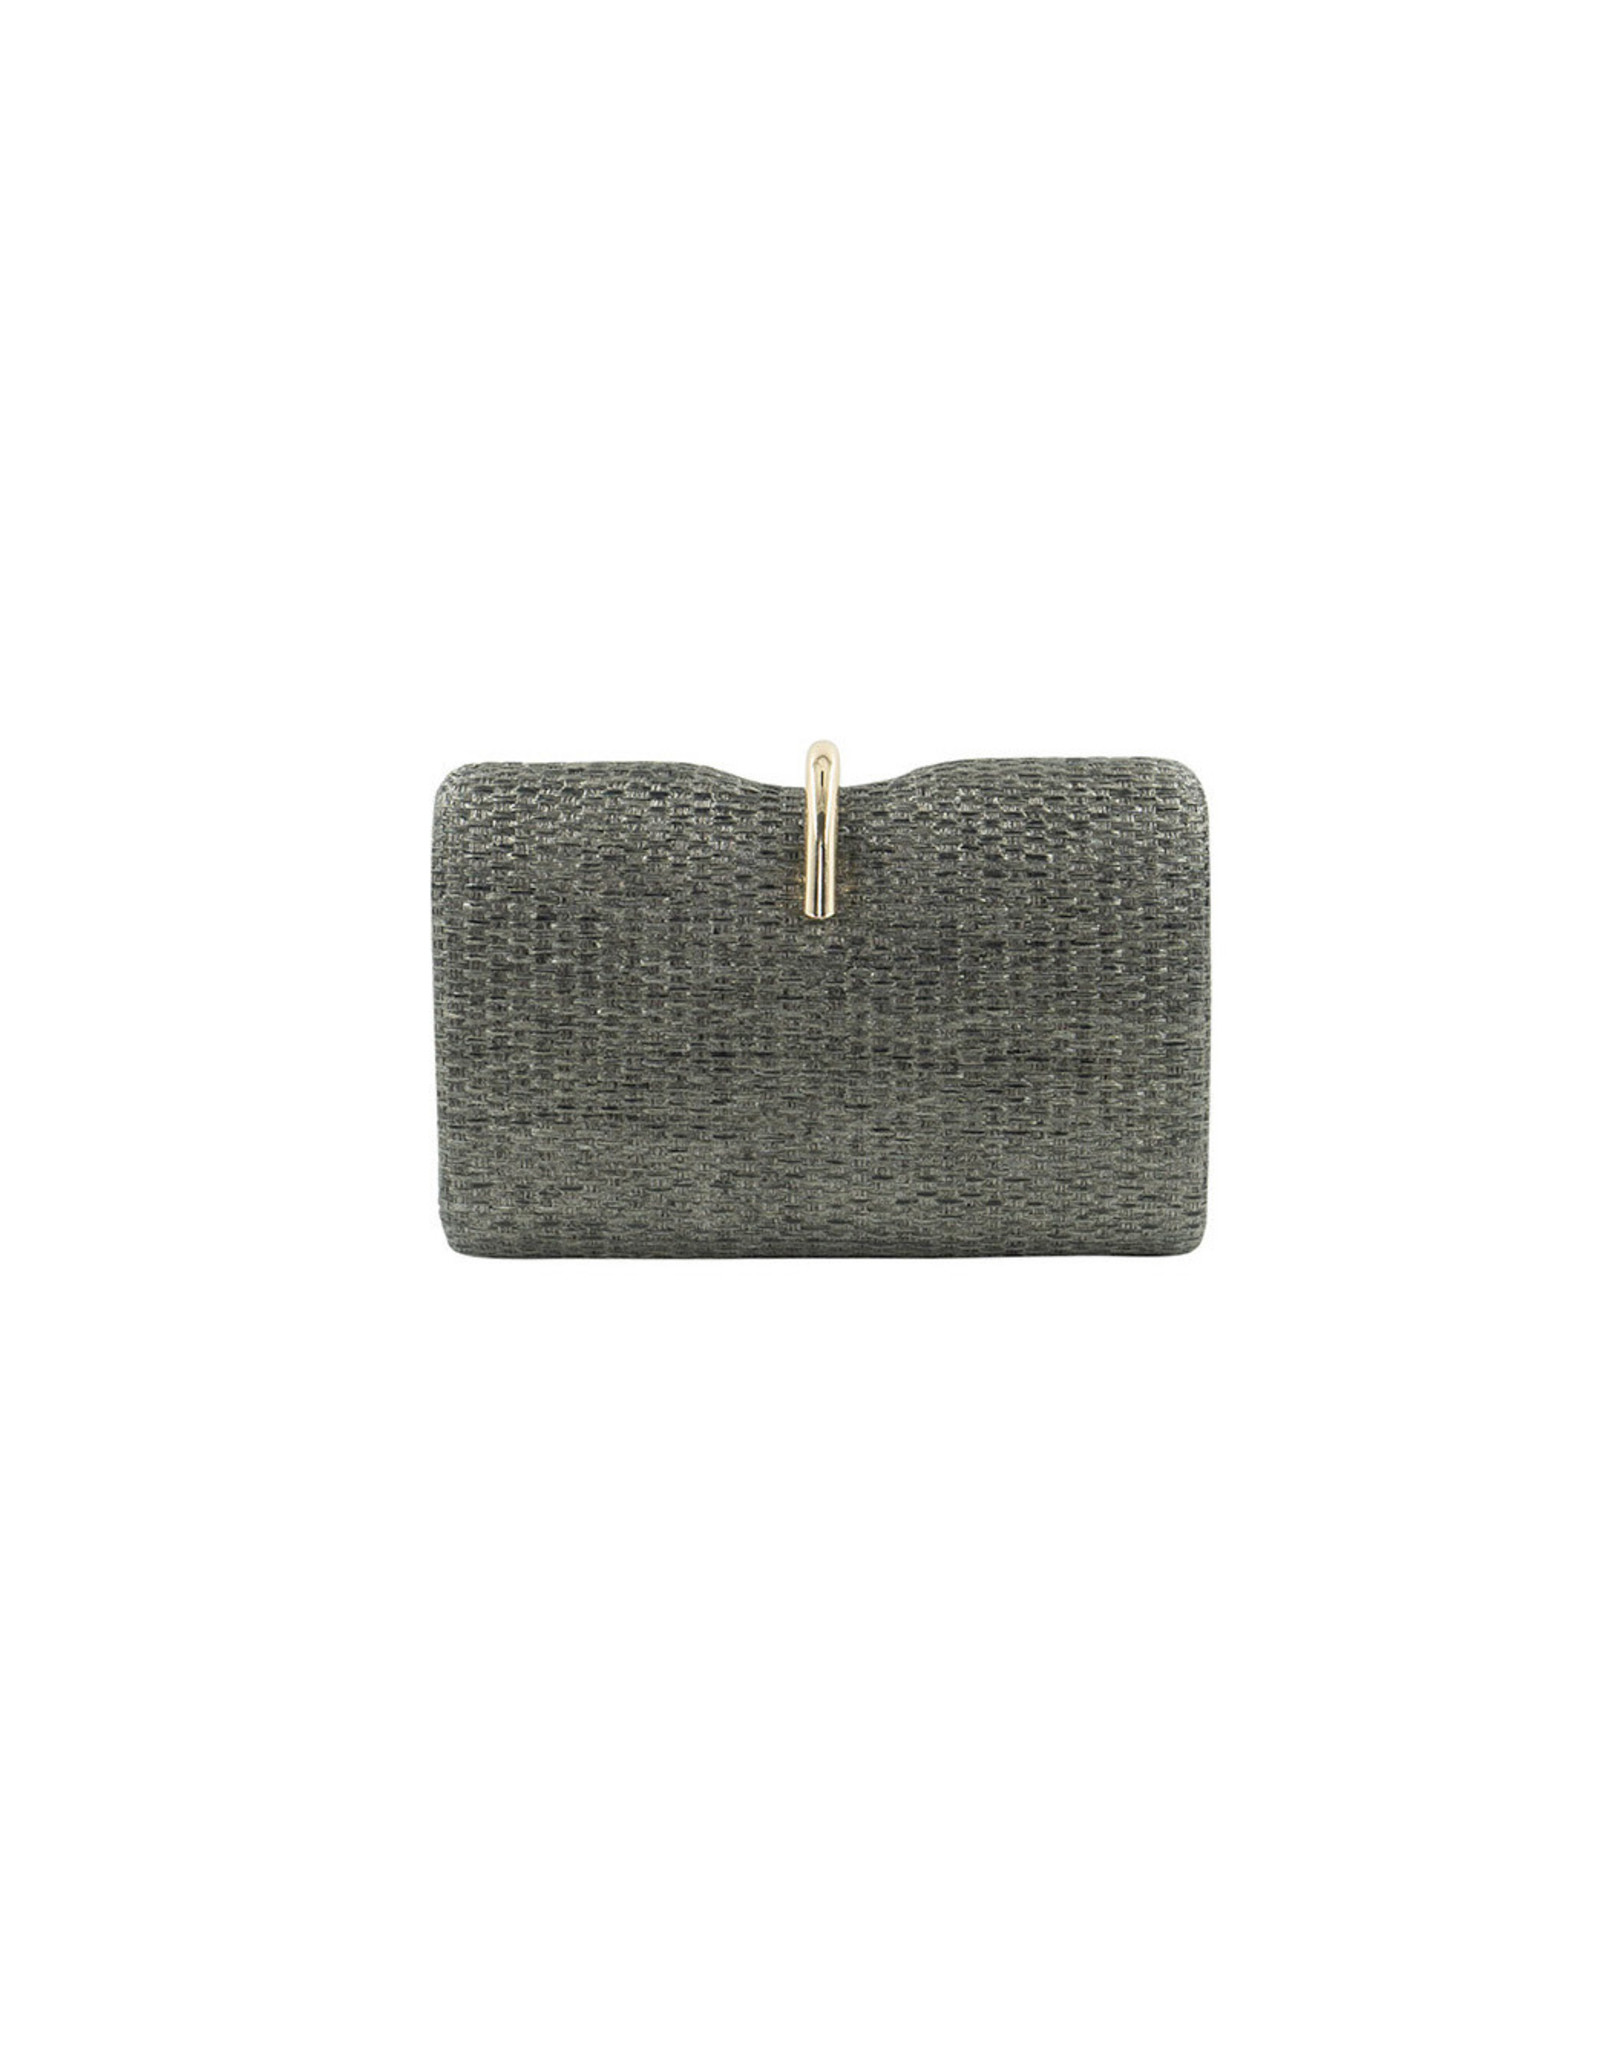 Pewter Jackie Woven Clutch